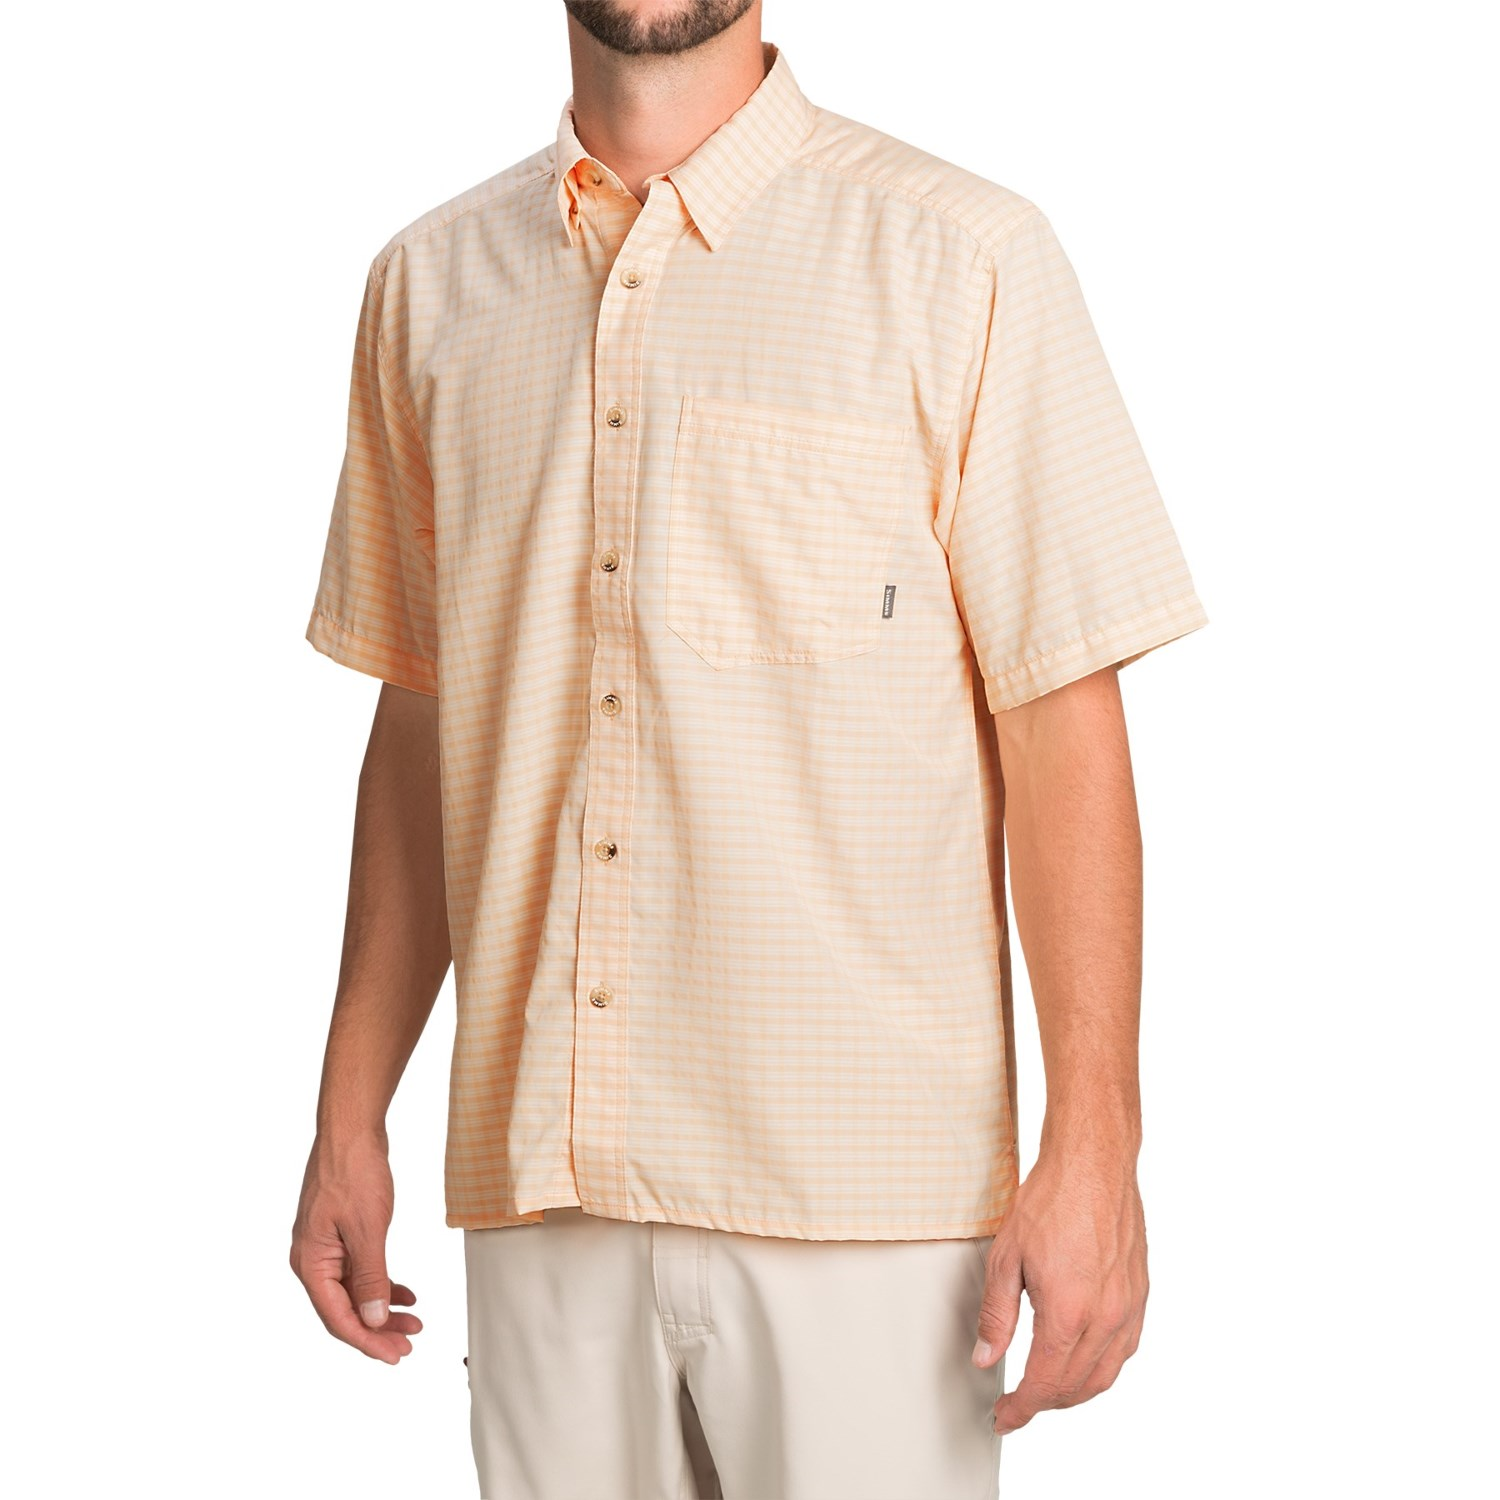 Shop eBay for great deals on Leather Short Sleeve Casual Button-Down Shirts for Men. You'll find new or used products in Leather Short Sleeve Casual Button-Down Shirts for Men on eBay. Free shipping on many items.